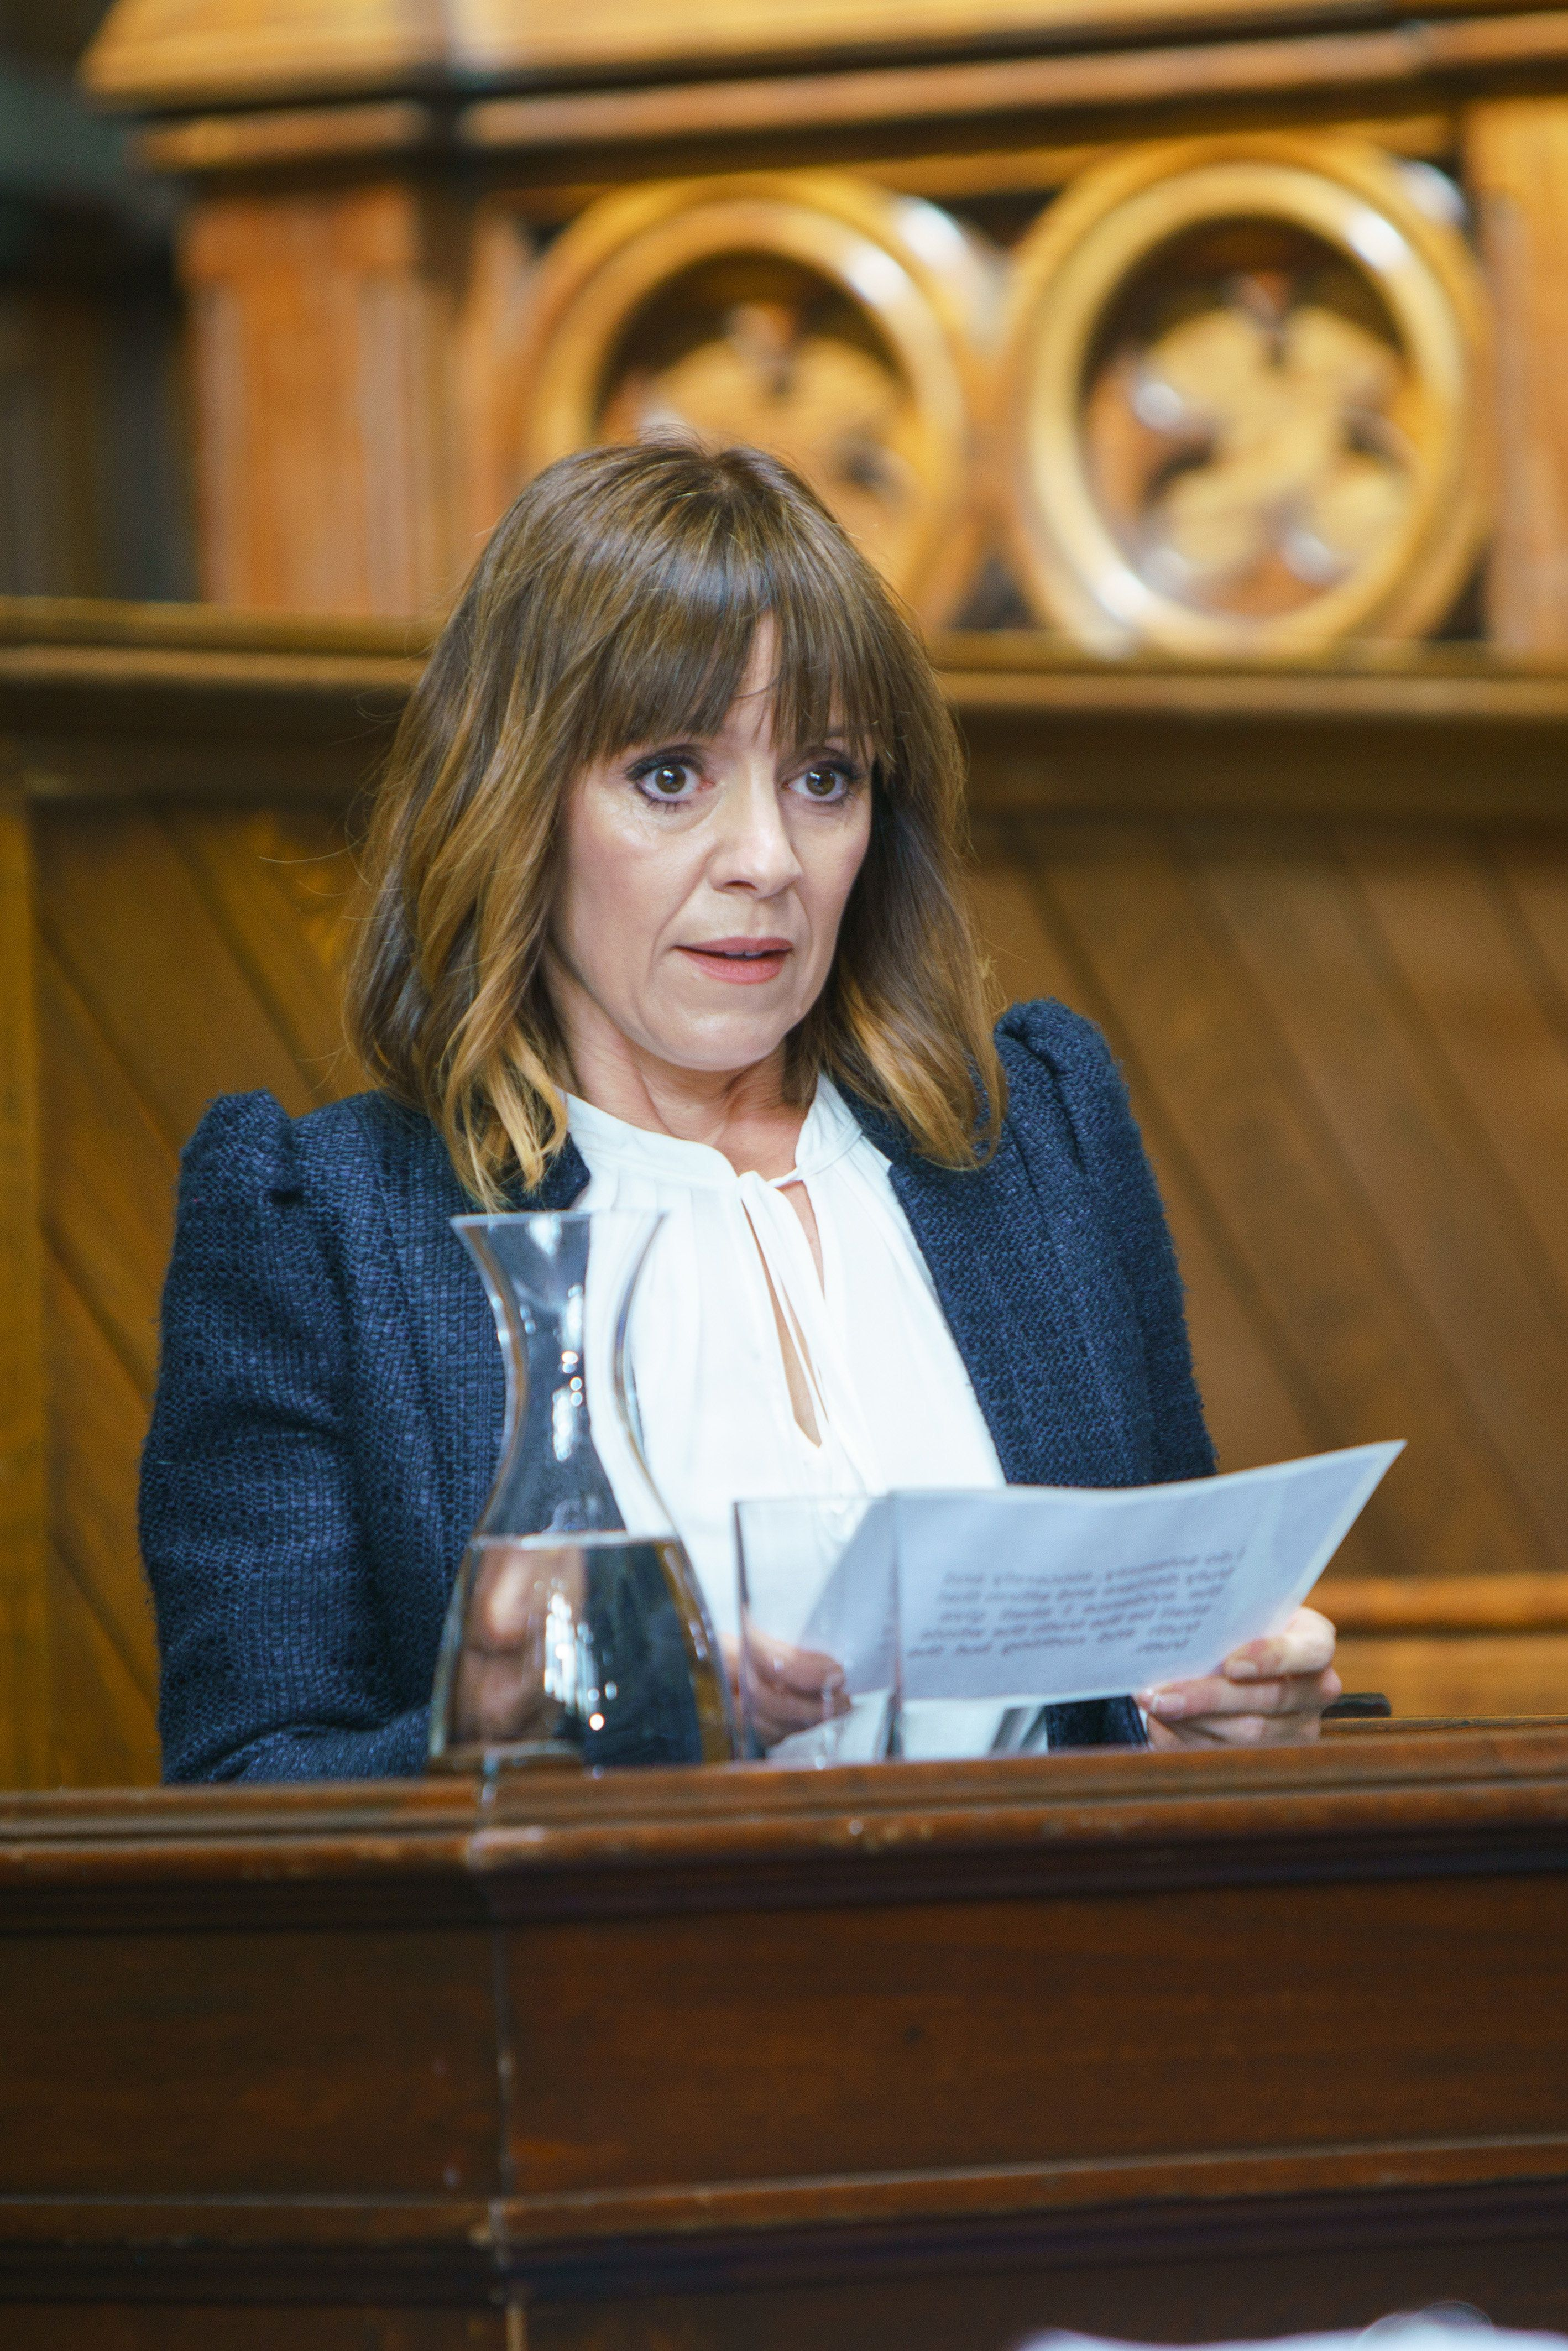 'Emmerdale' Spoilers! Zoe Henry Reveals Whether A Rhona And Paddy Reunion Could Be On The